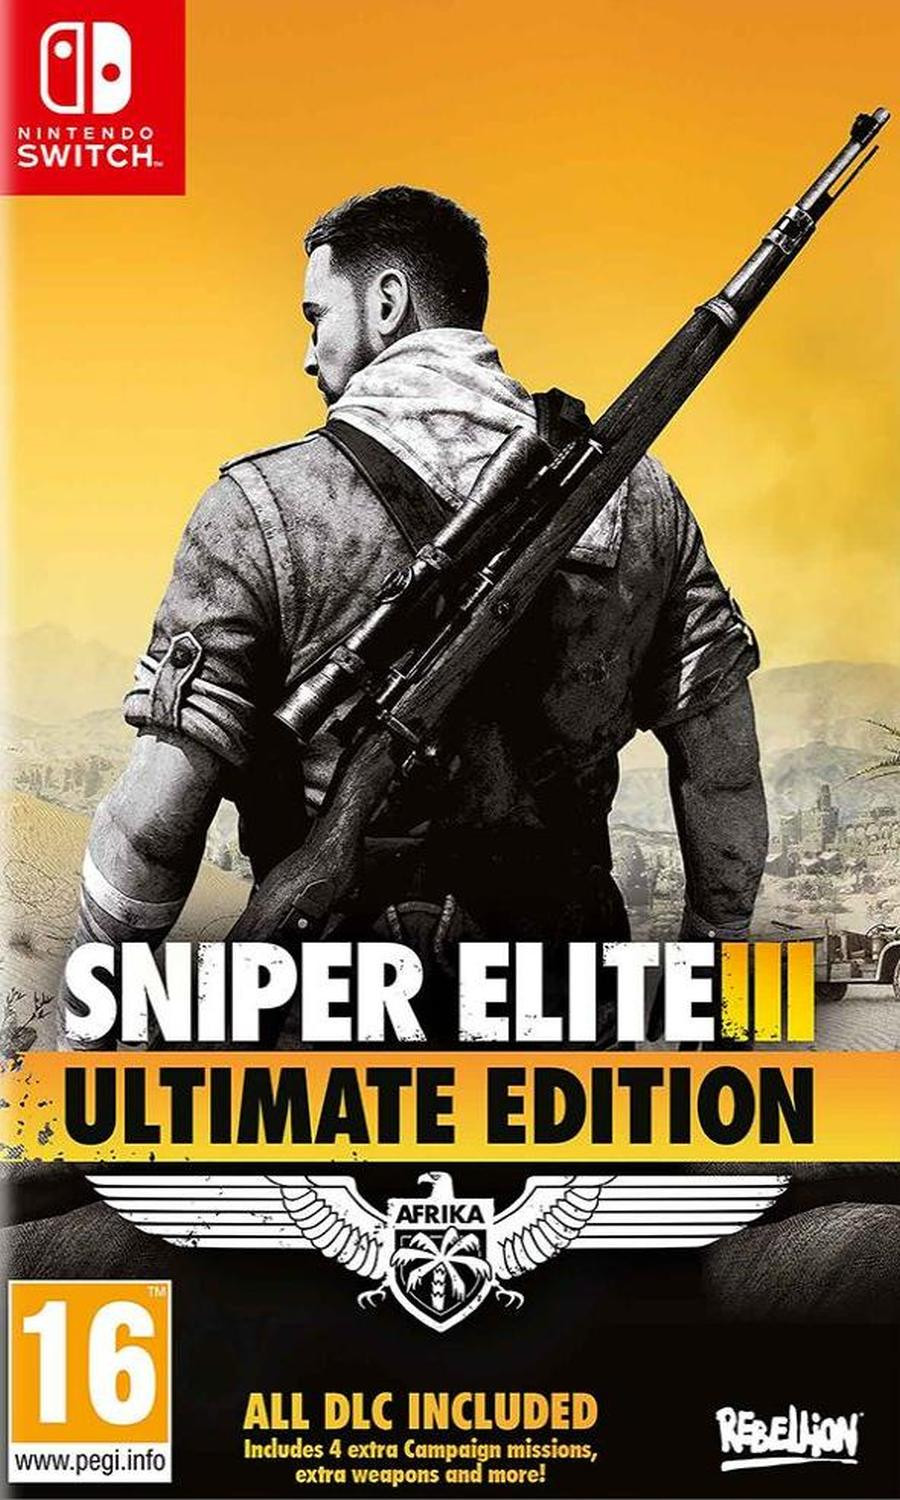 SWITCH Sniper Elite 3 - Ultimate Edition